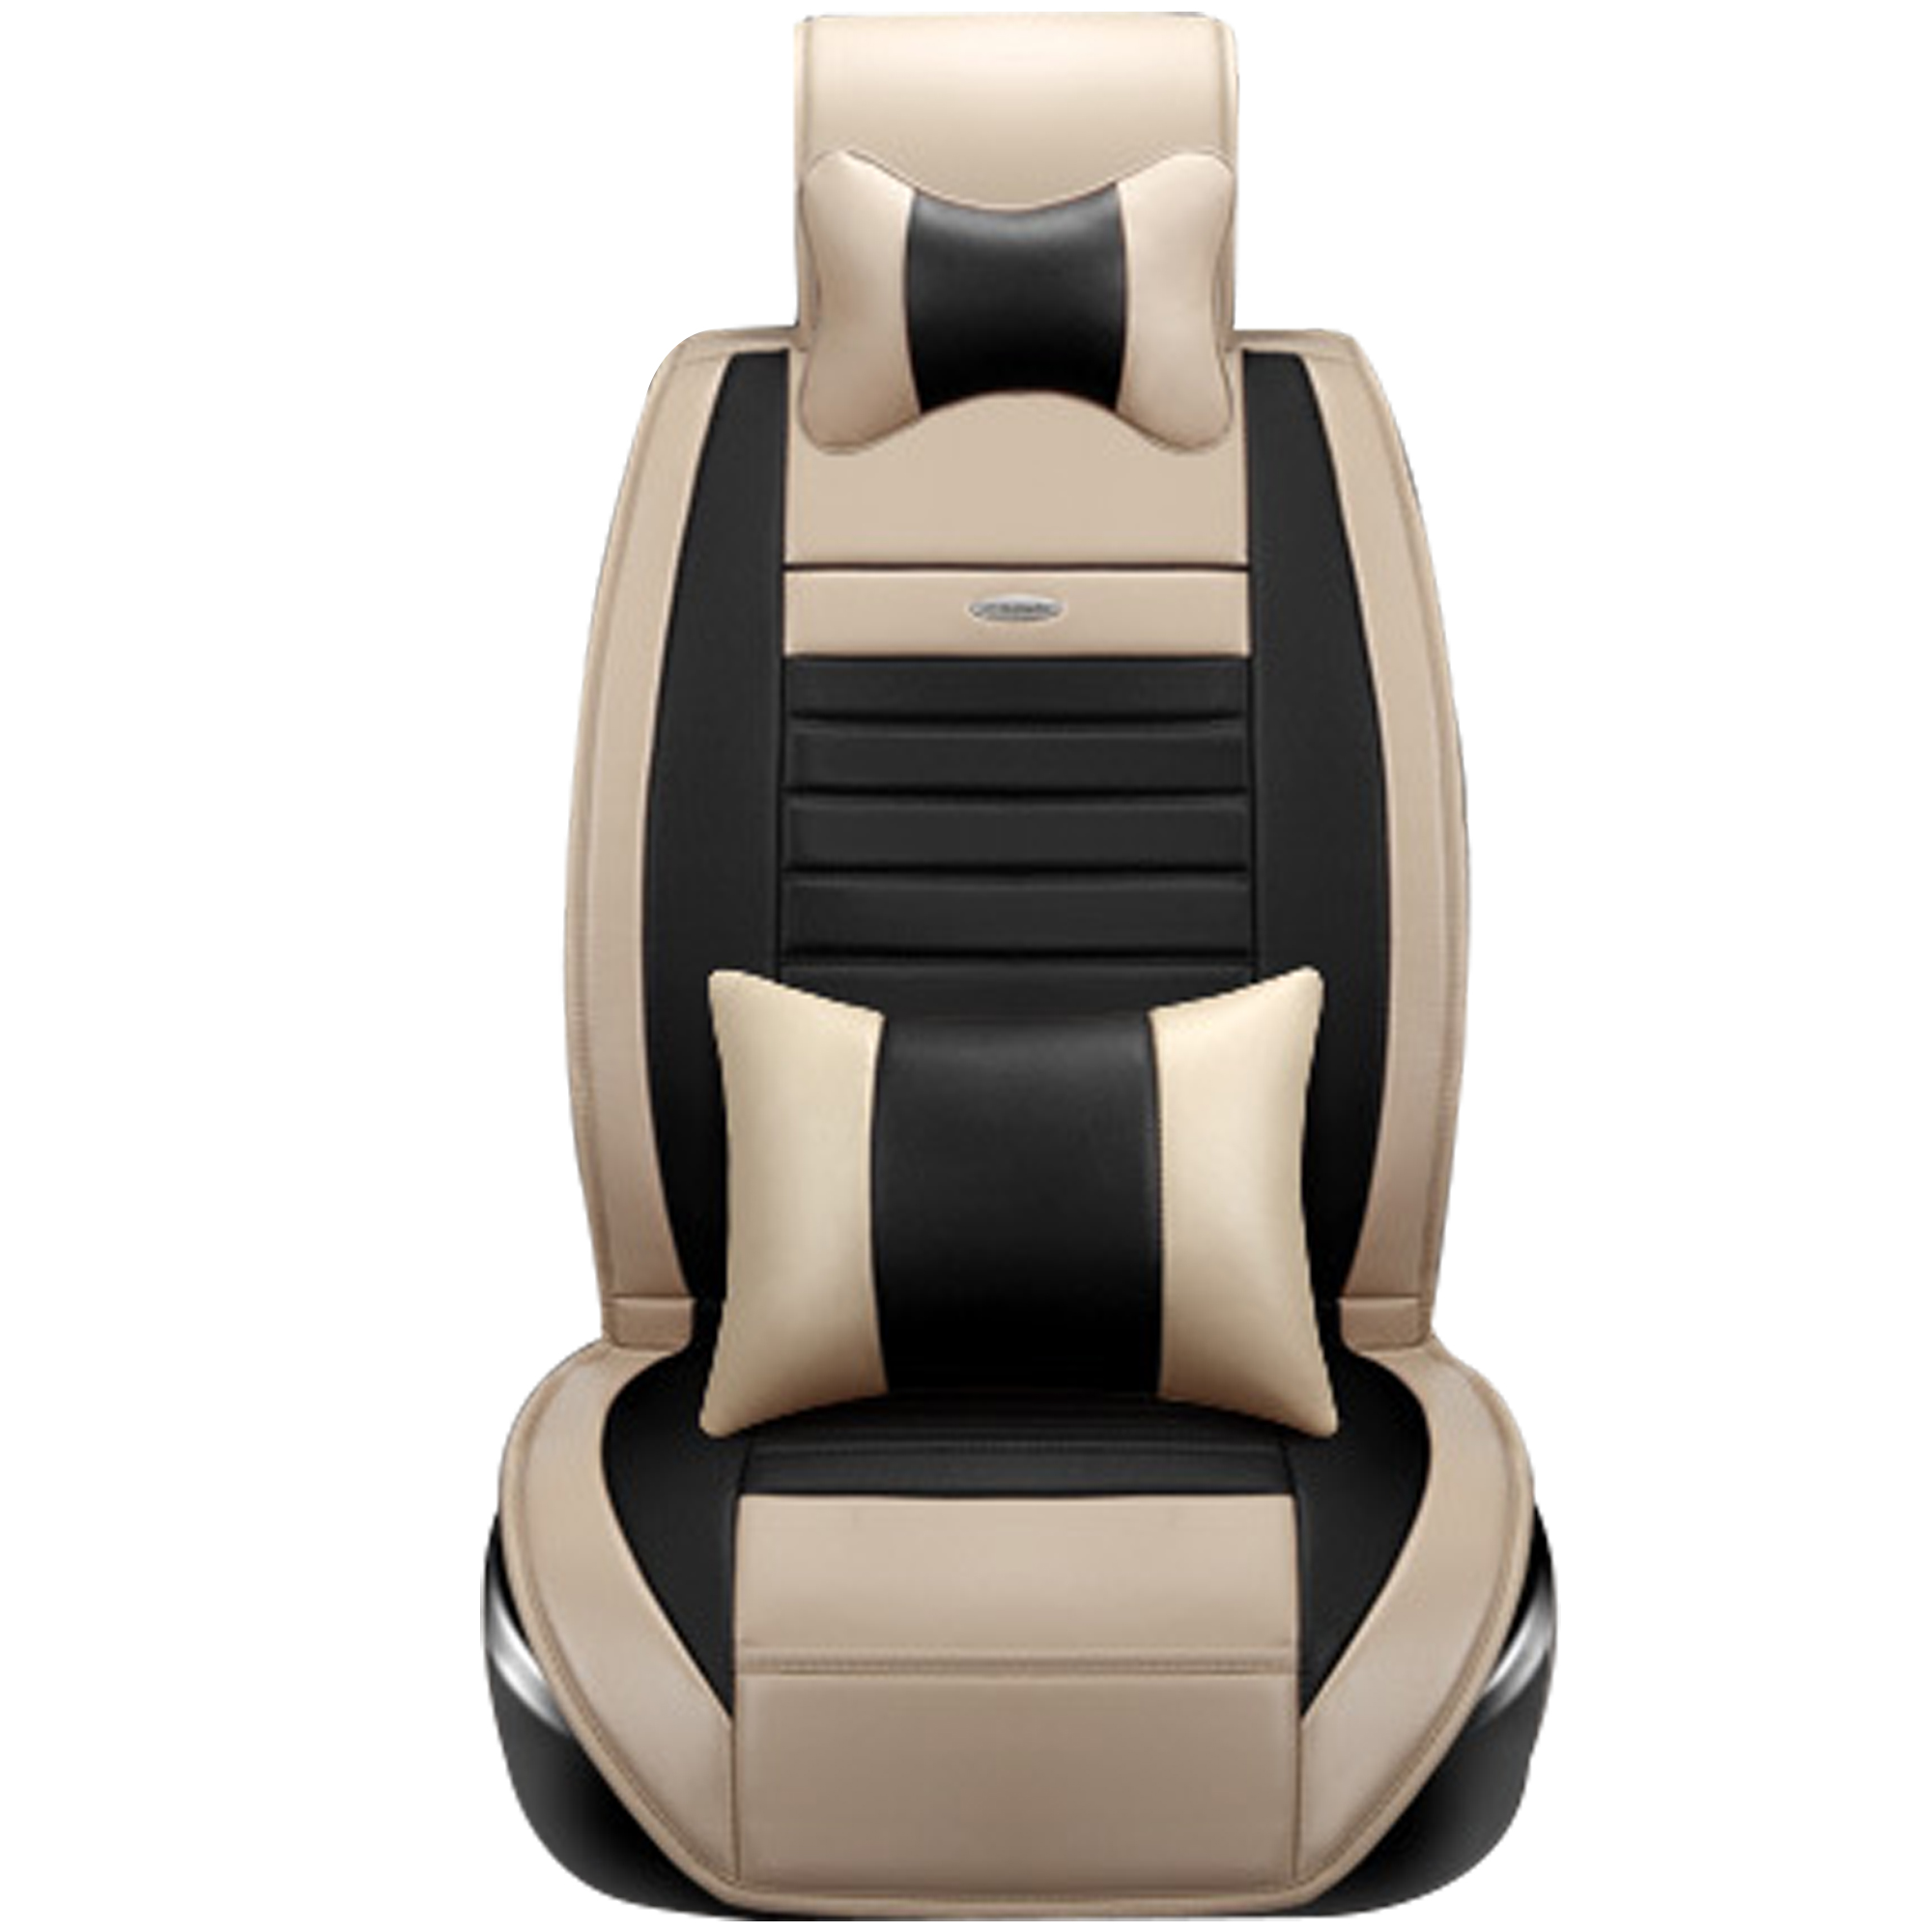 TINTON LIFE PU Leather Car Seat Covers 5 Seats Car Cushion Seat Rear Bench Cover, Beige